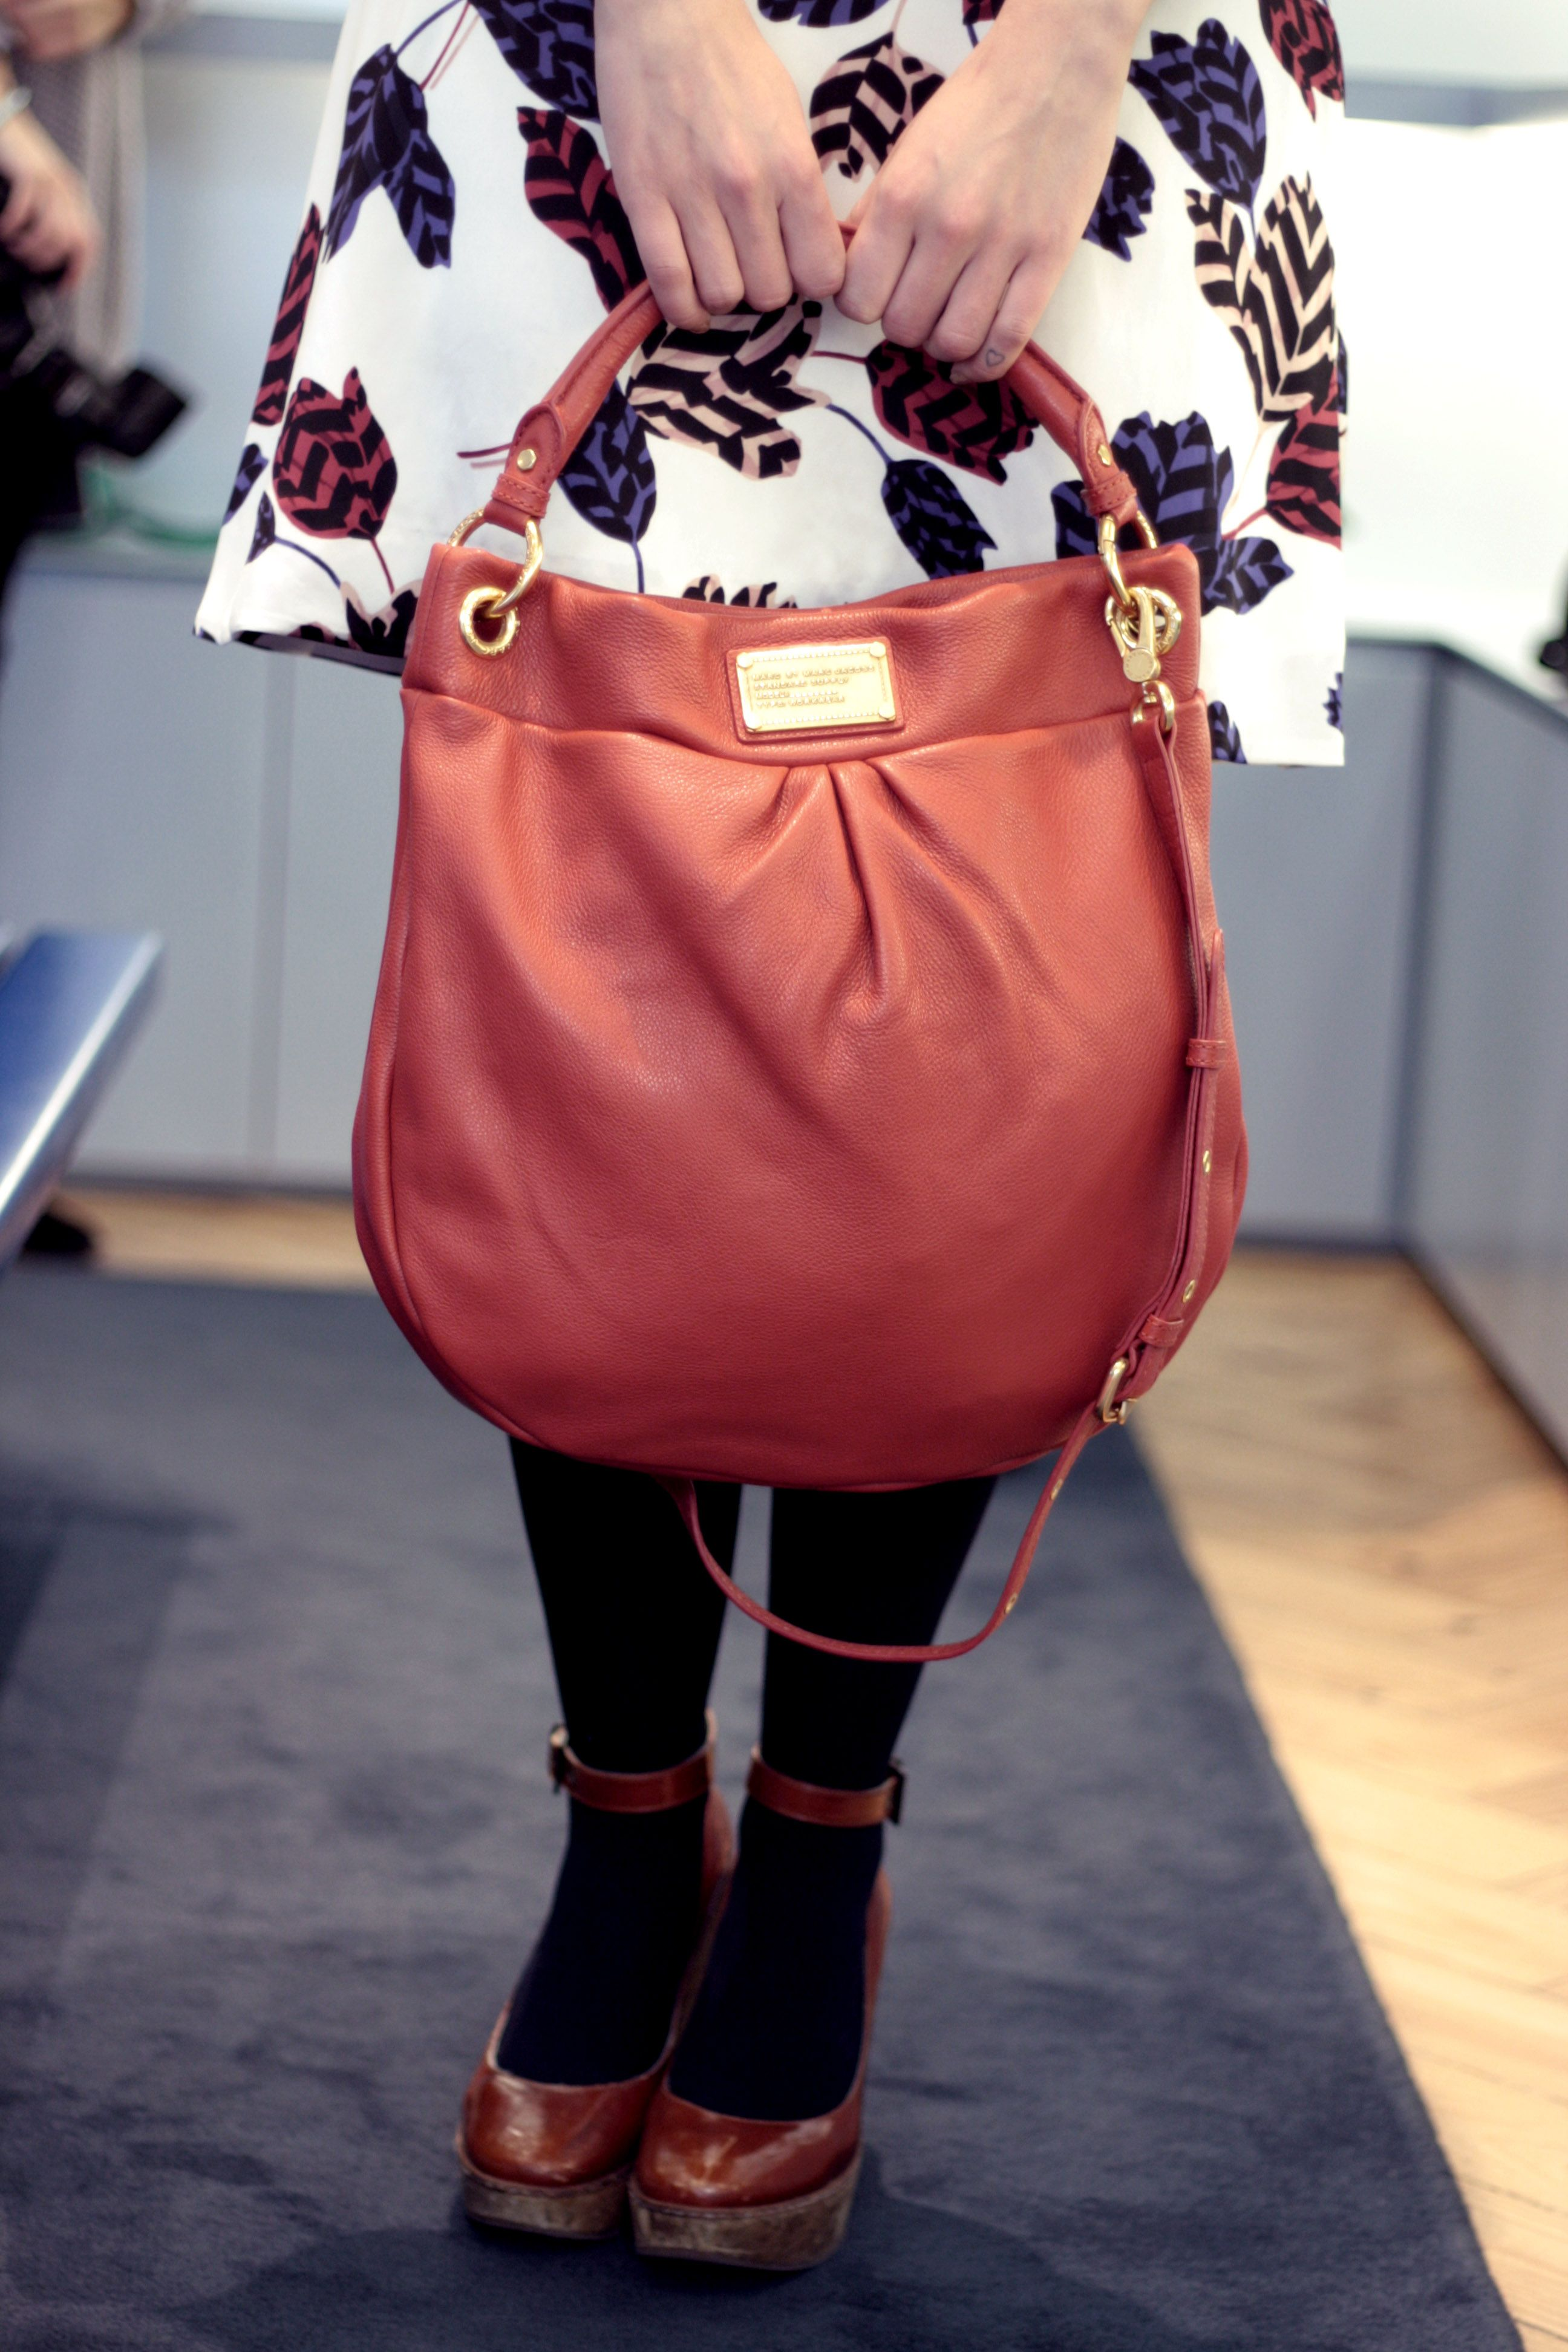 76c94d90180 Marc by Marc Jacobs Classic Q Hillier Hobo in Bright Persimmon via Pretty  Exquisite